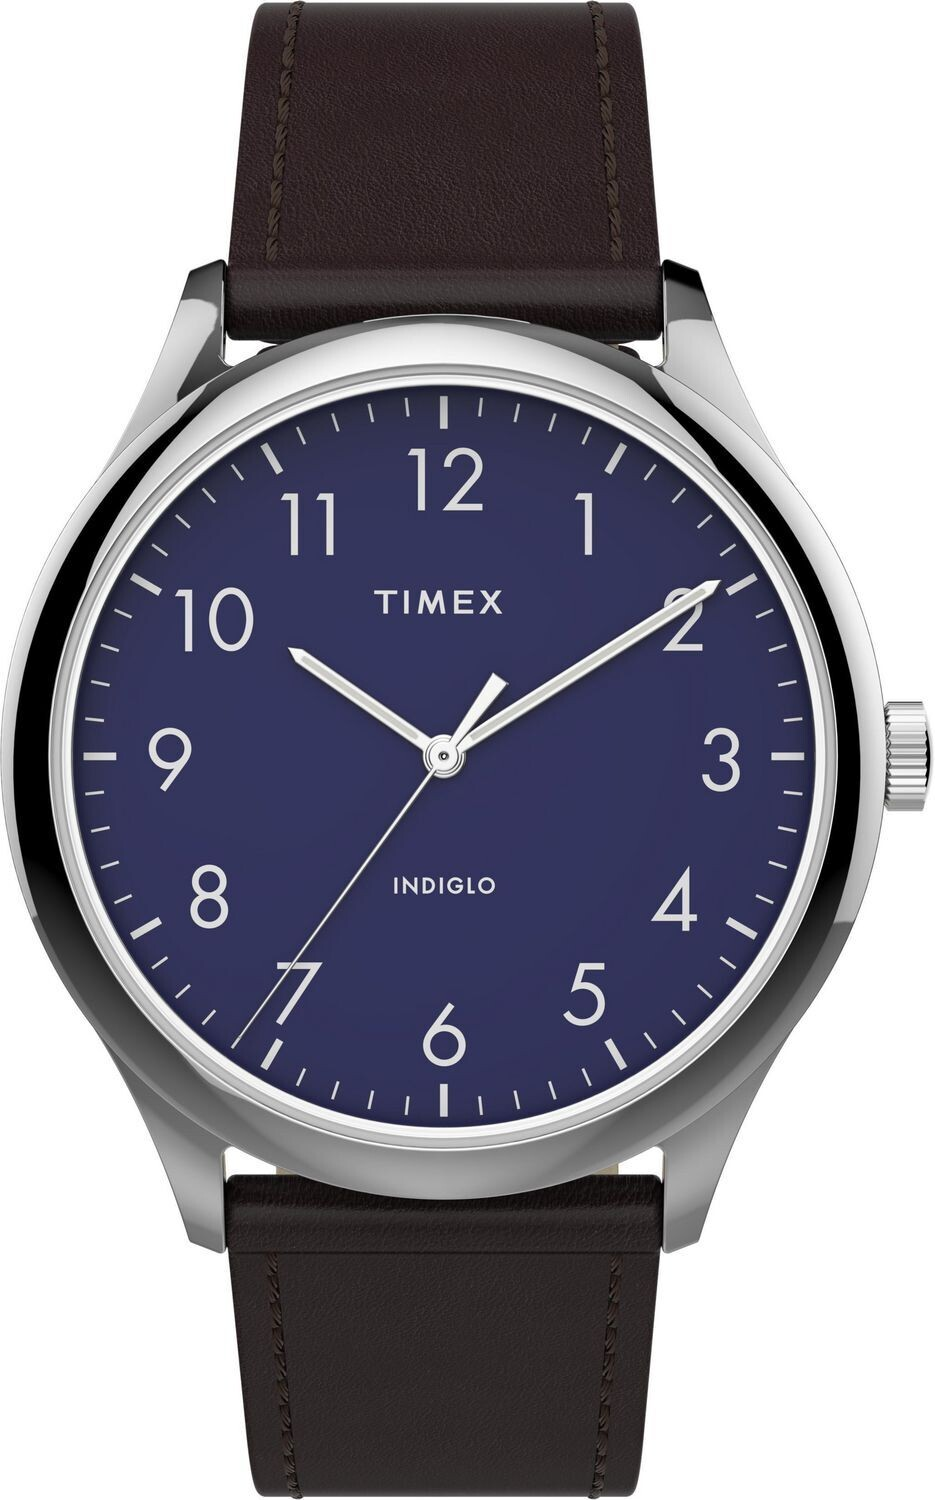 GTS BLUE DIAL WHITE NUMBERS TIMEX WATCH